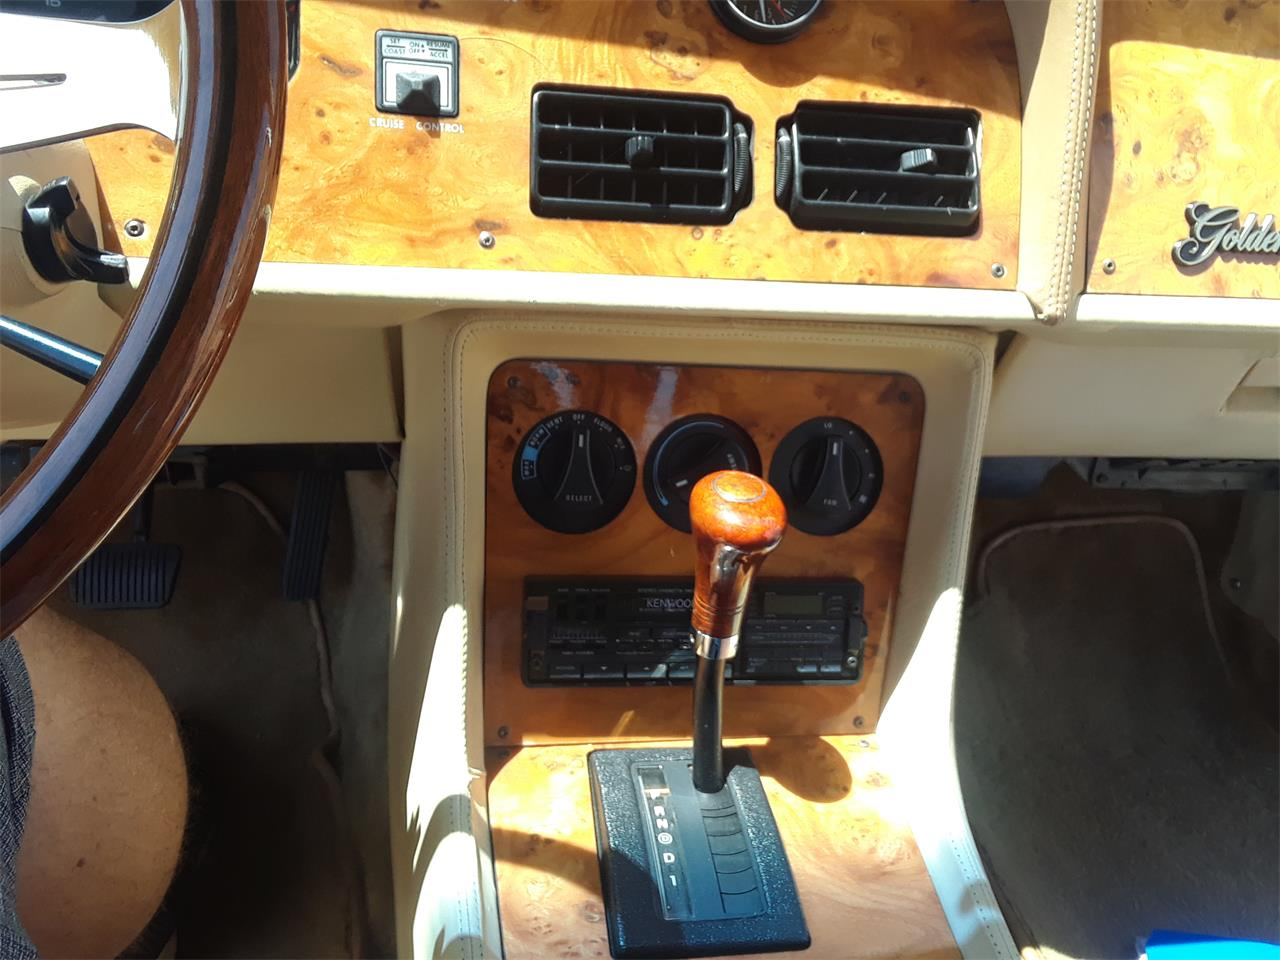 1987 Zimmer Golden Spirit for sale in Lakside, CA – photo 13